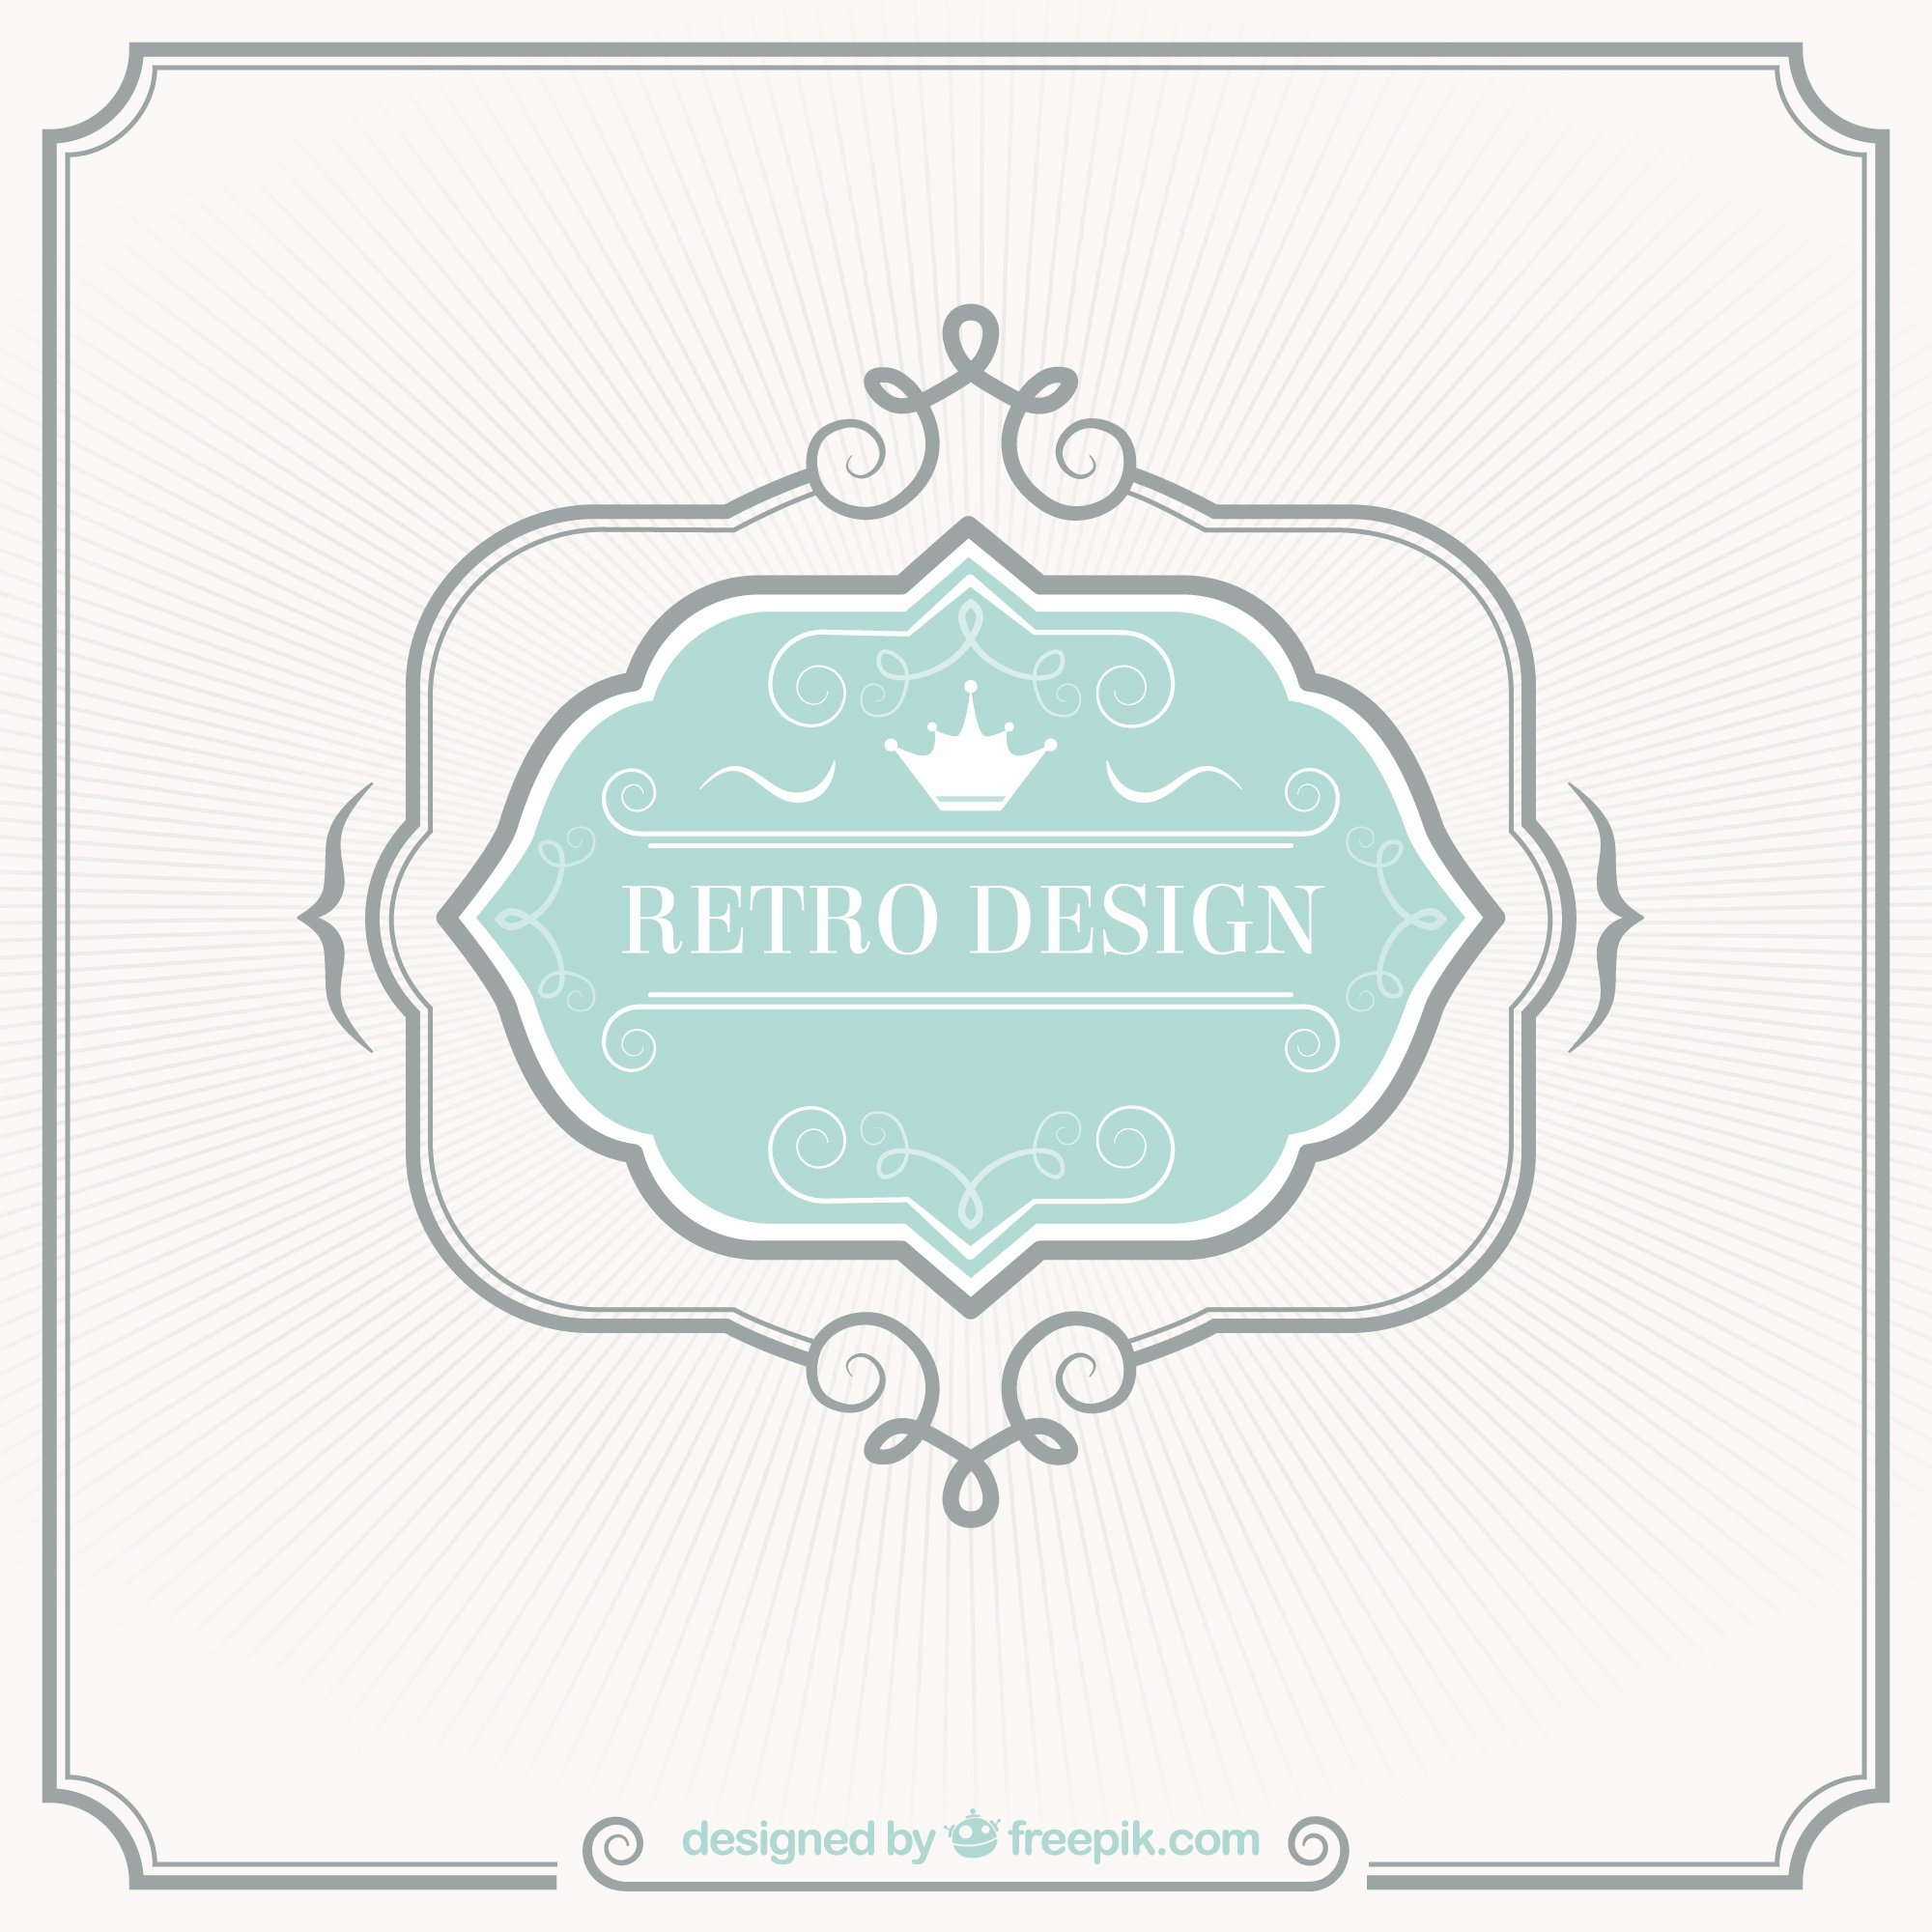 Retro-Label-Design